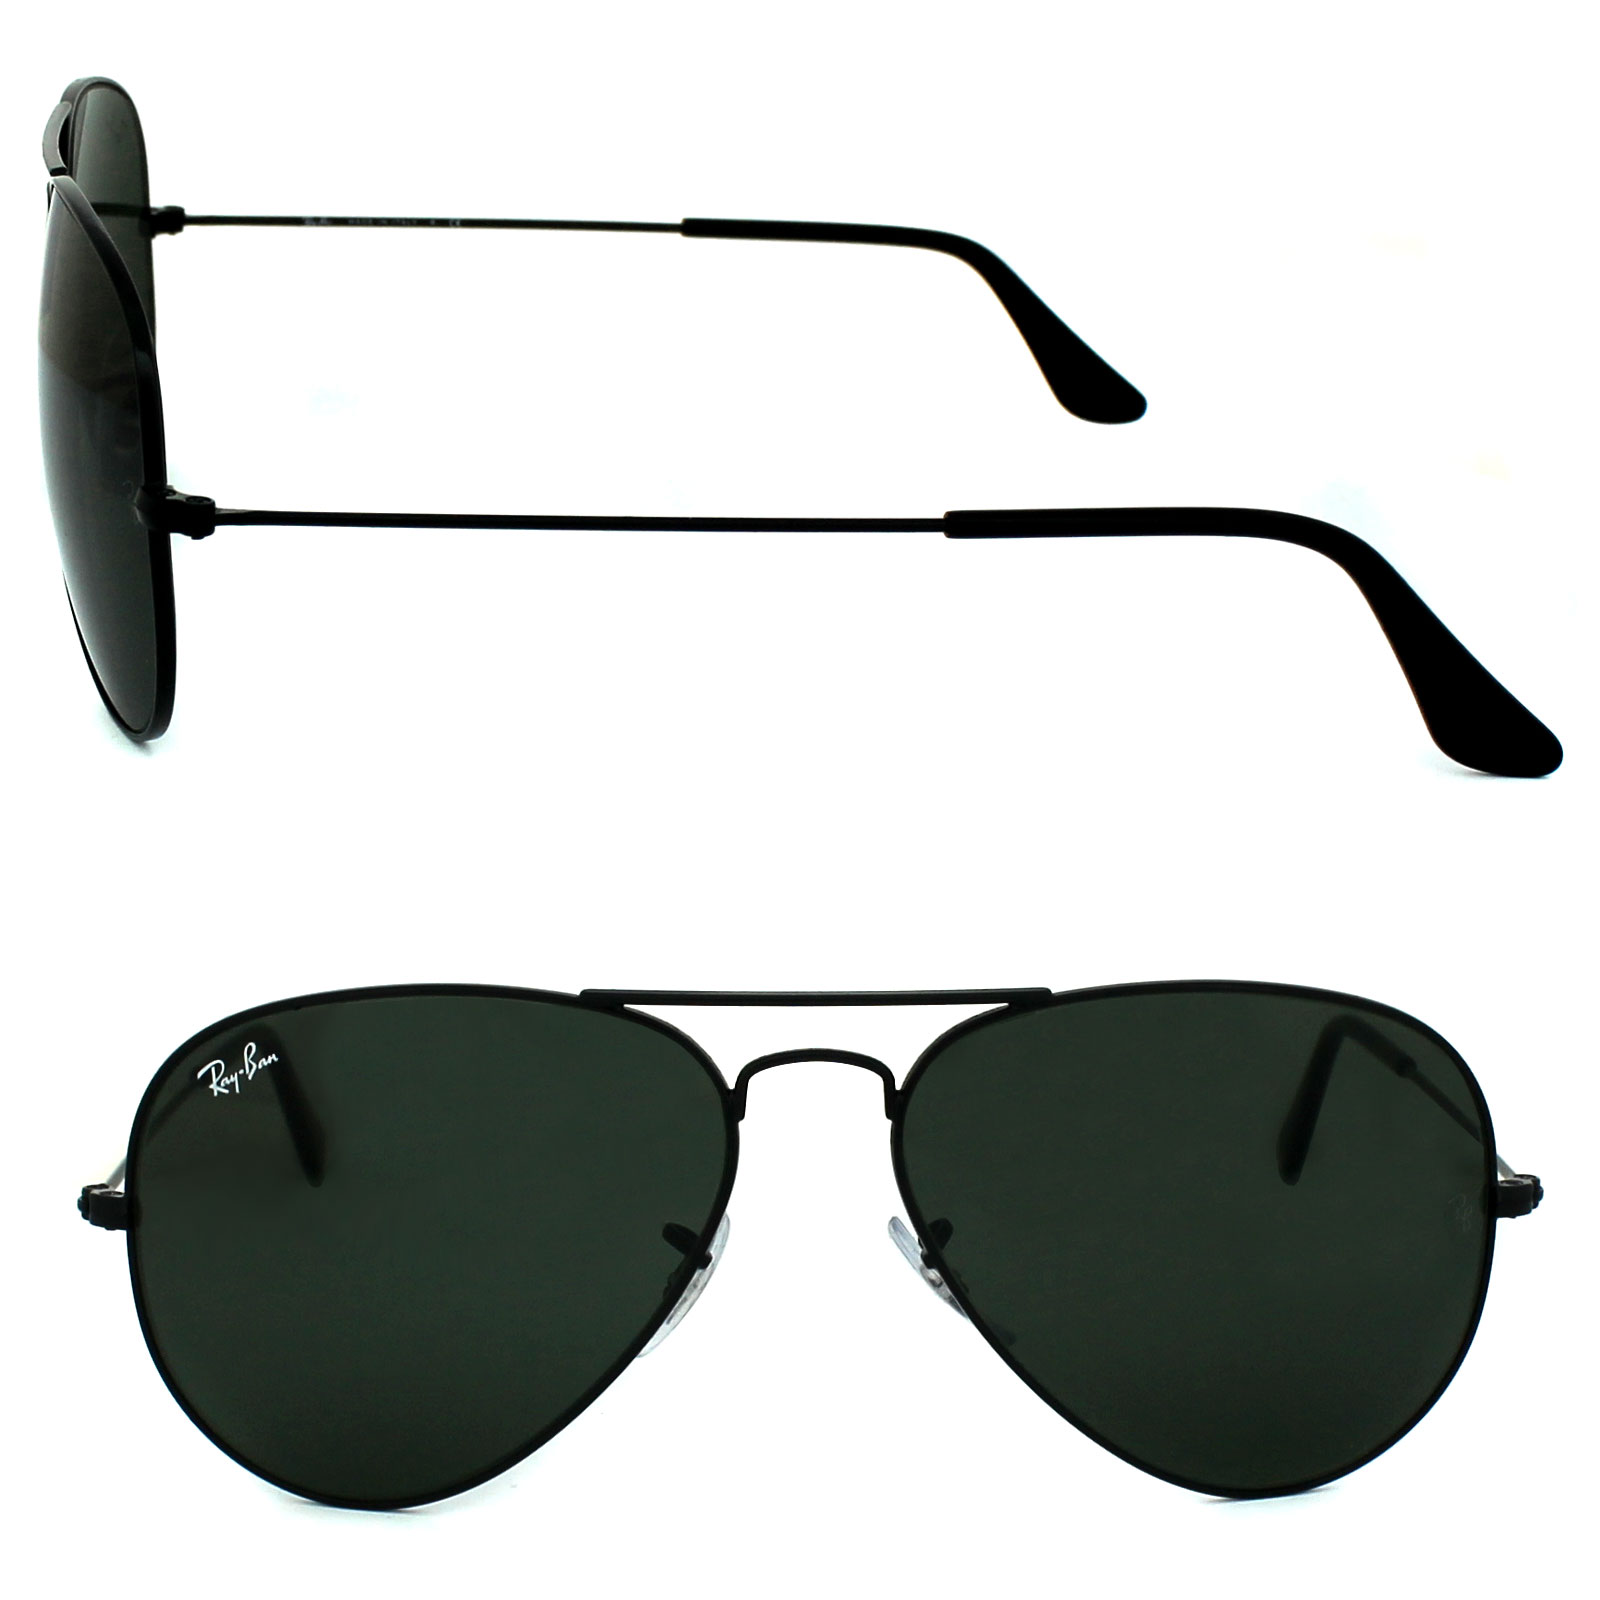 e8f9e29584 Sentinel Ray-Ban Sunglasses Aviator 3025 L2823 Black Green G-15 Medium 58mm